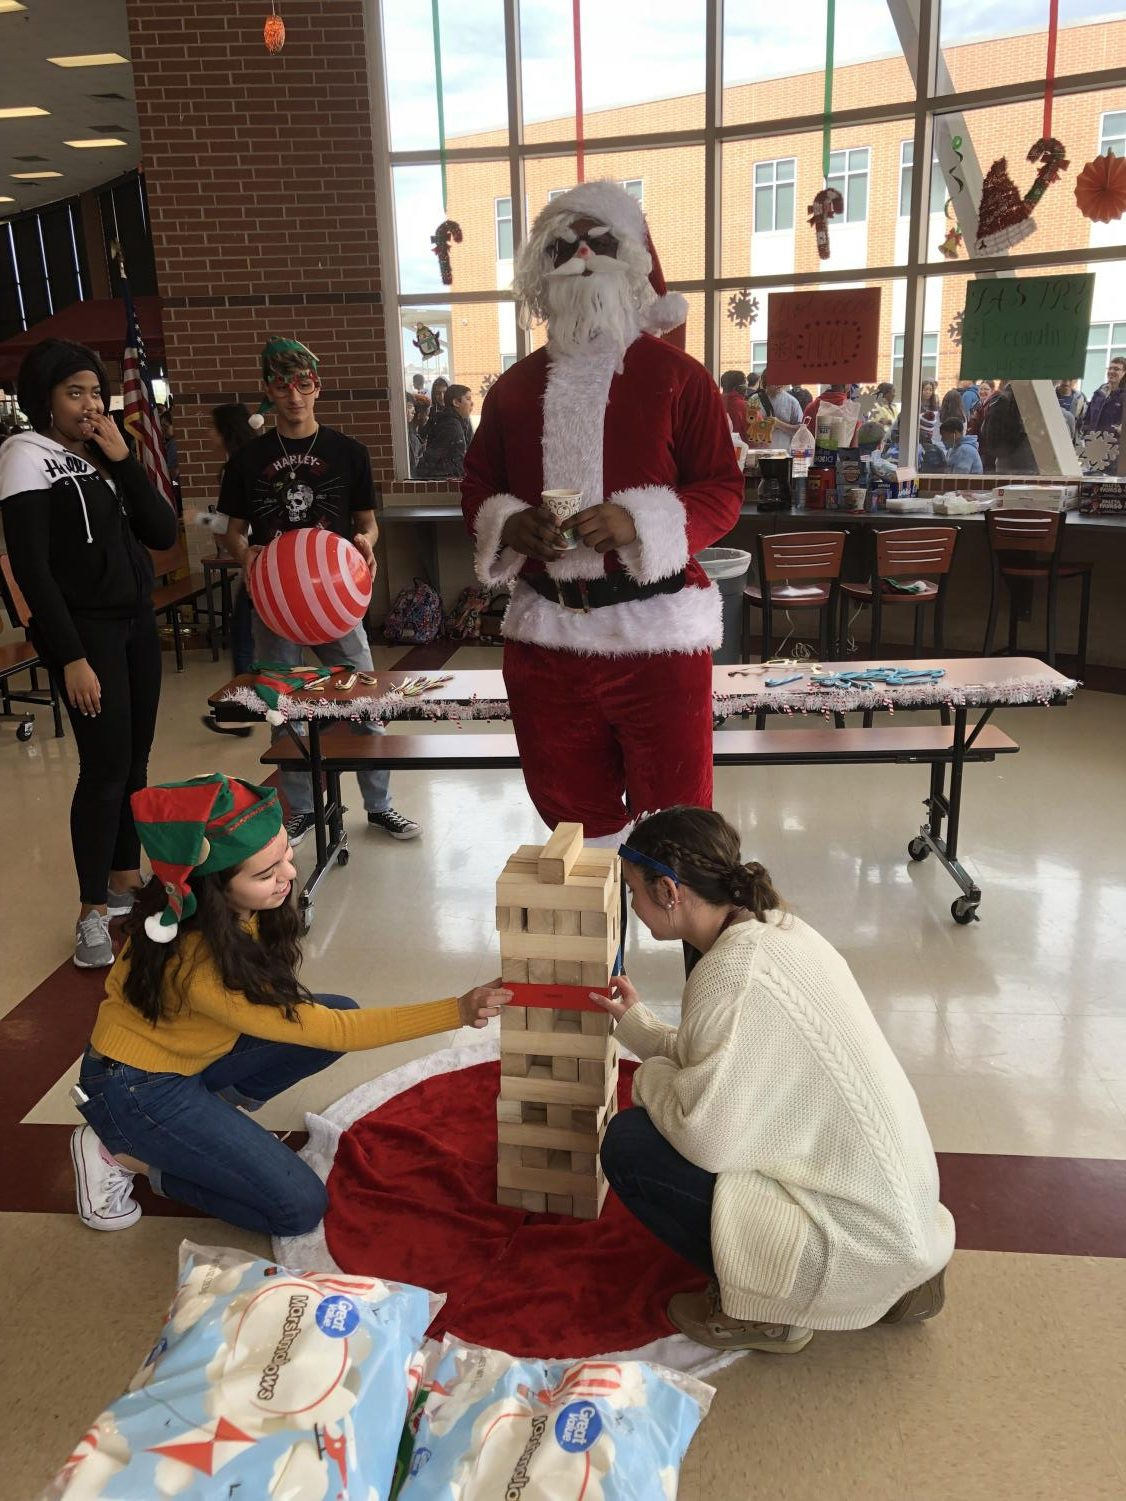 """The junior class officers and """"Santa"""" play Jenga at the Santa Workshop in the Cafeteria during lunch. The Santa Workshop worked as a fundraiser for project graduation."""